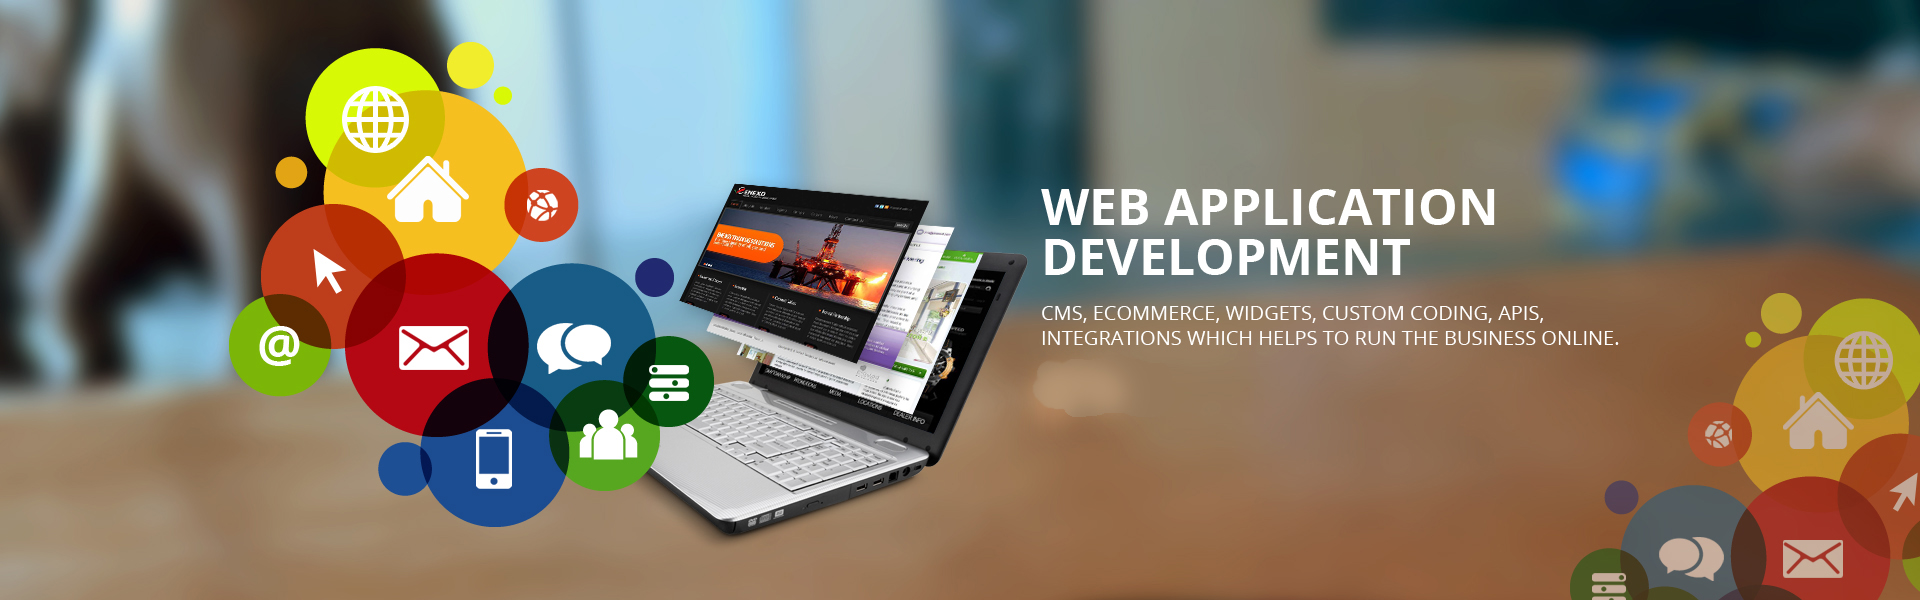 web application developmwnt